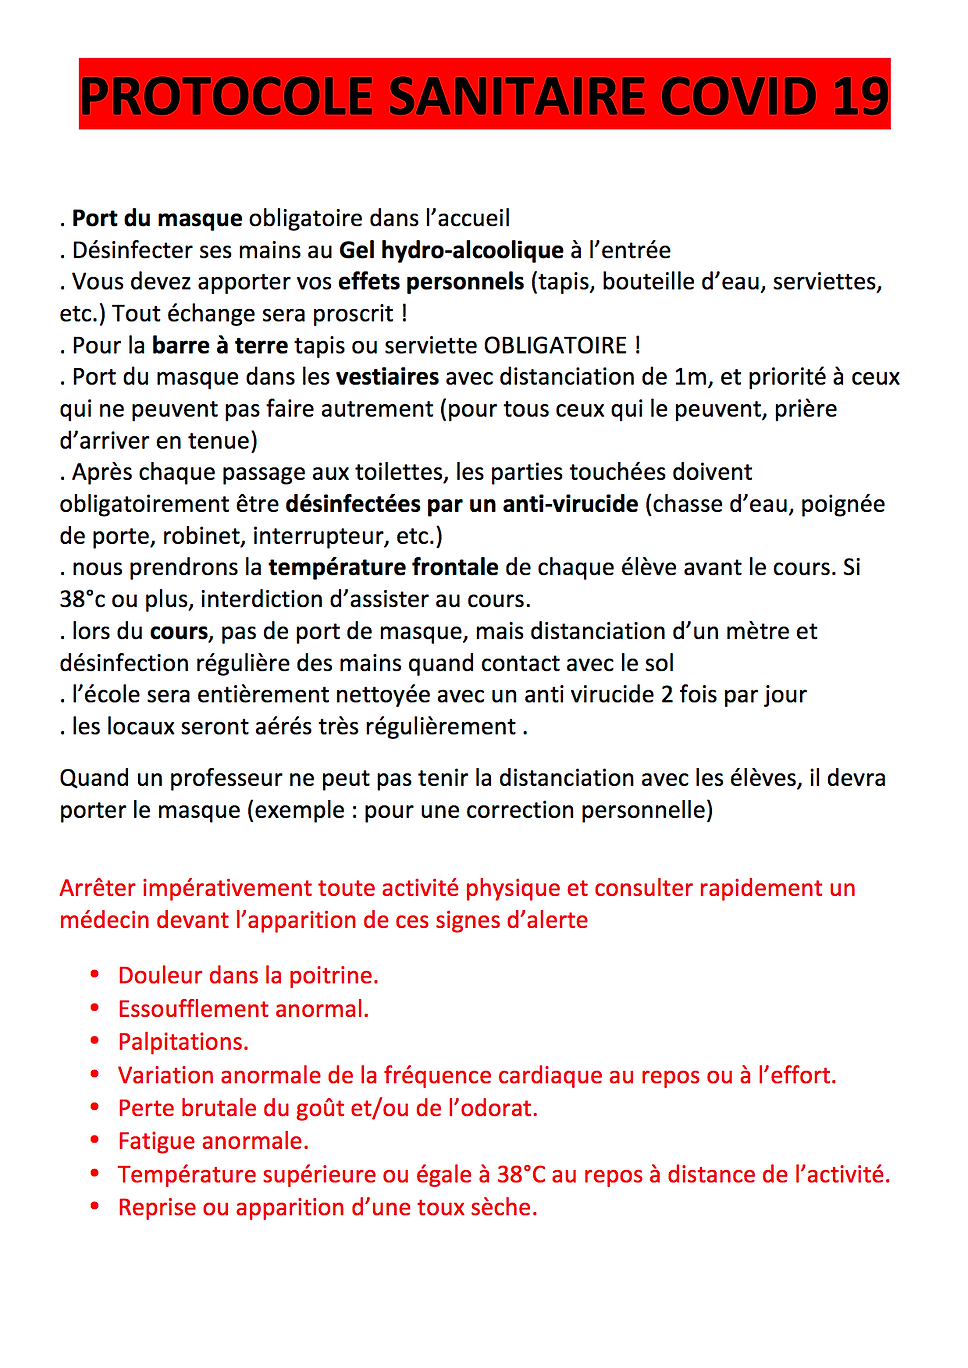 PROTOCOLE SANITAIRE COVID 19.png